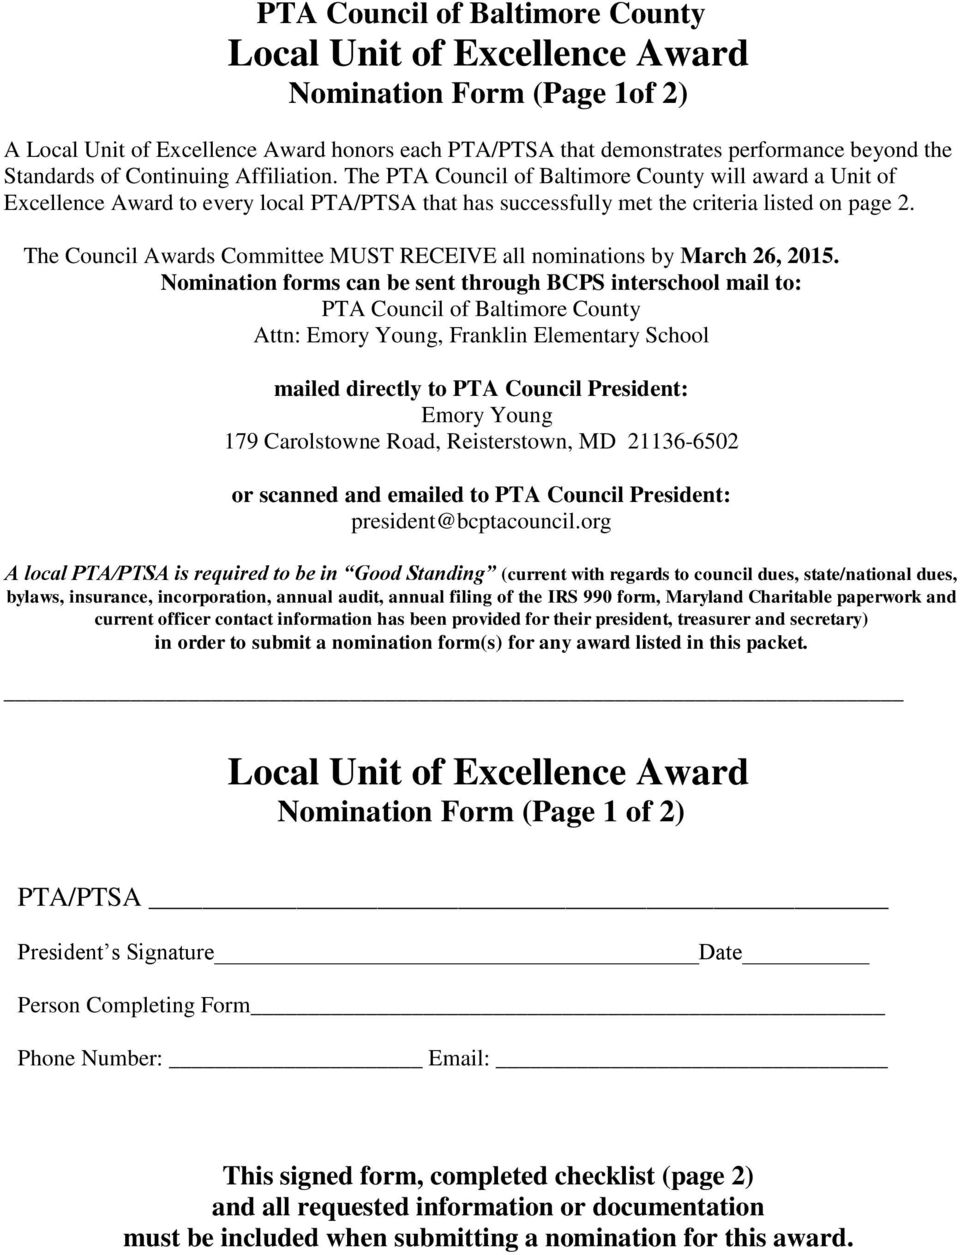 Attn:, Franklin Elementary School bylaws, insurance, incorporation, annual audit, annual filing of the IRS 990 form, Maryland Charitable paperwork and Local Unit of Excellence Award Nomination Form